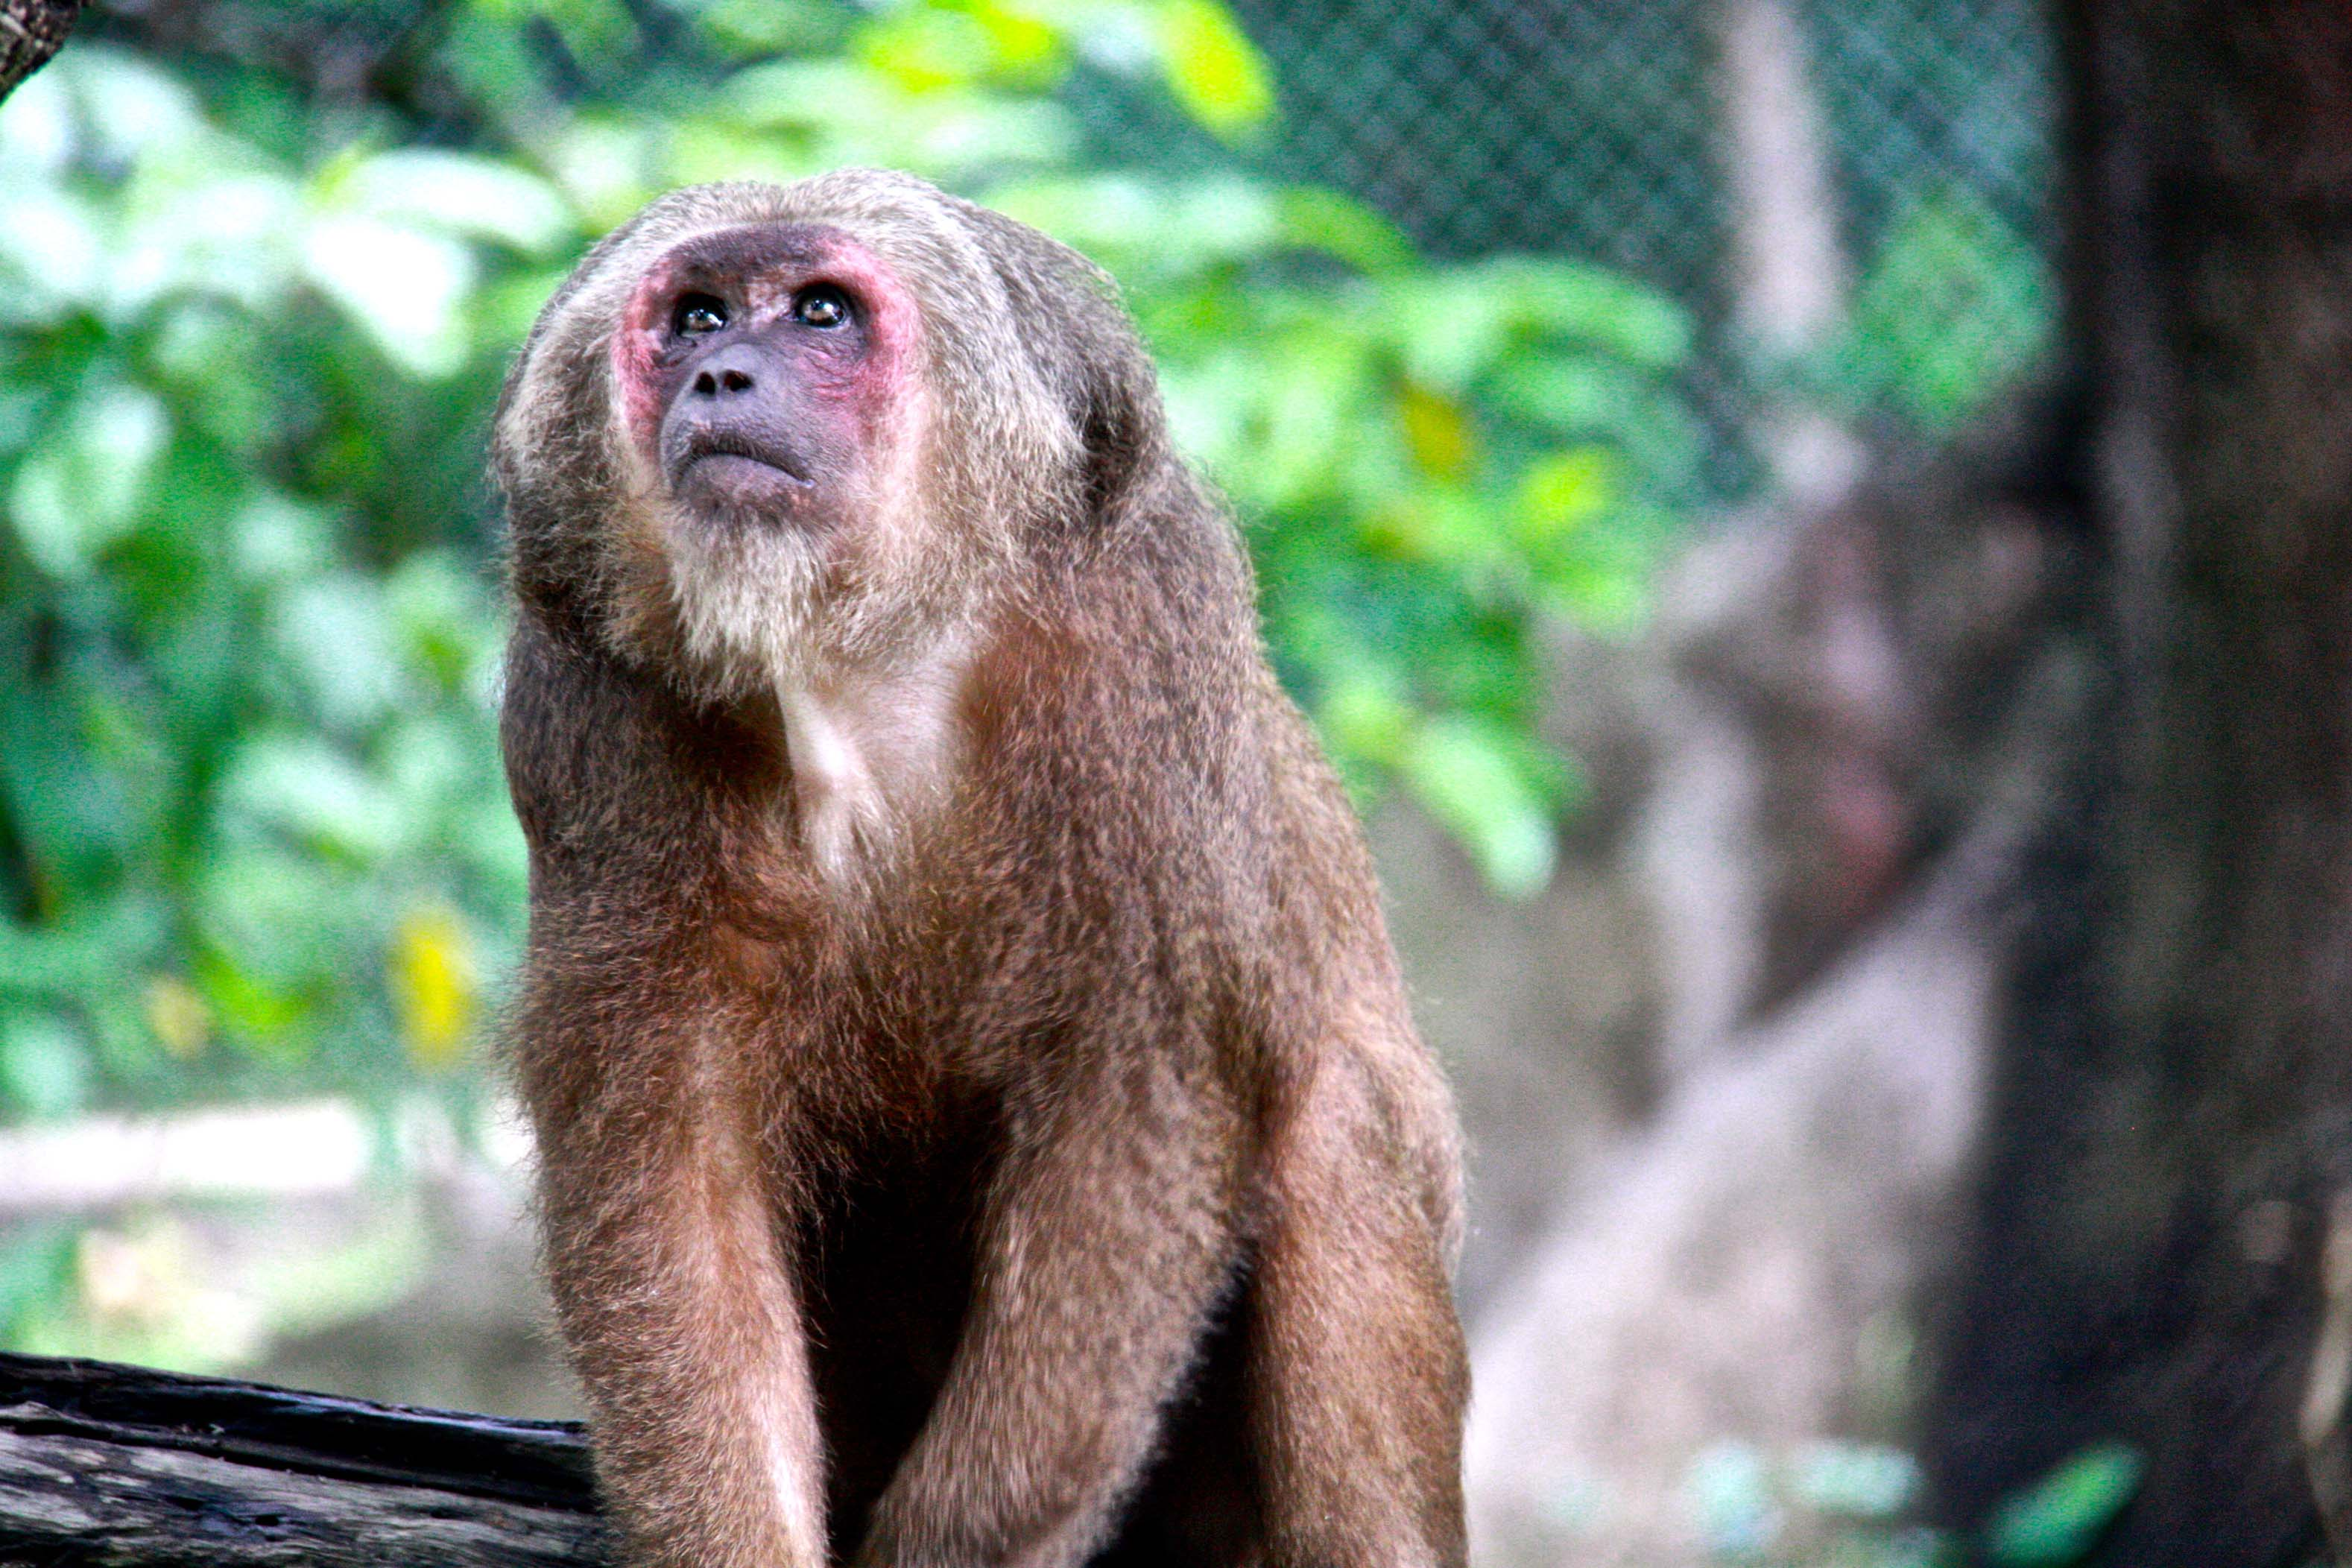 Jeaw – Stump Tailed Macaque (Macaca Arctoides)a